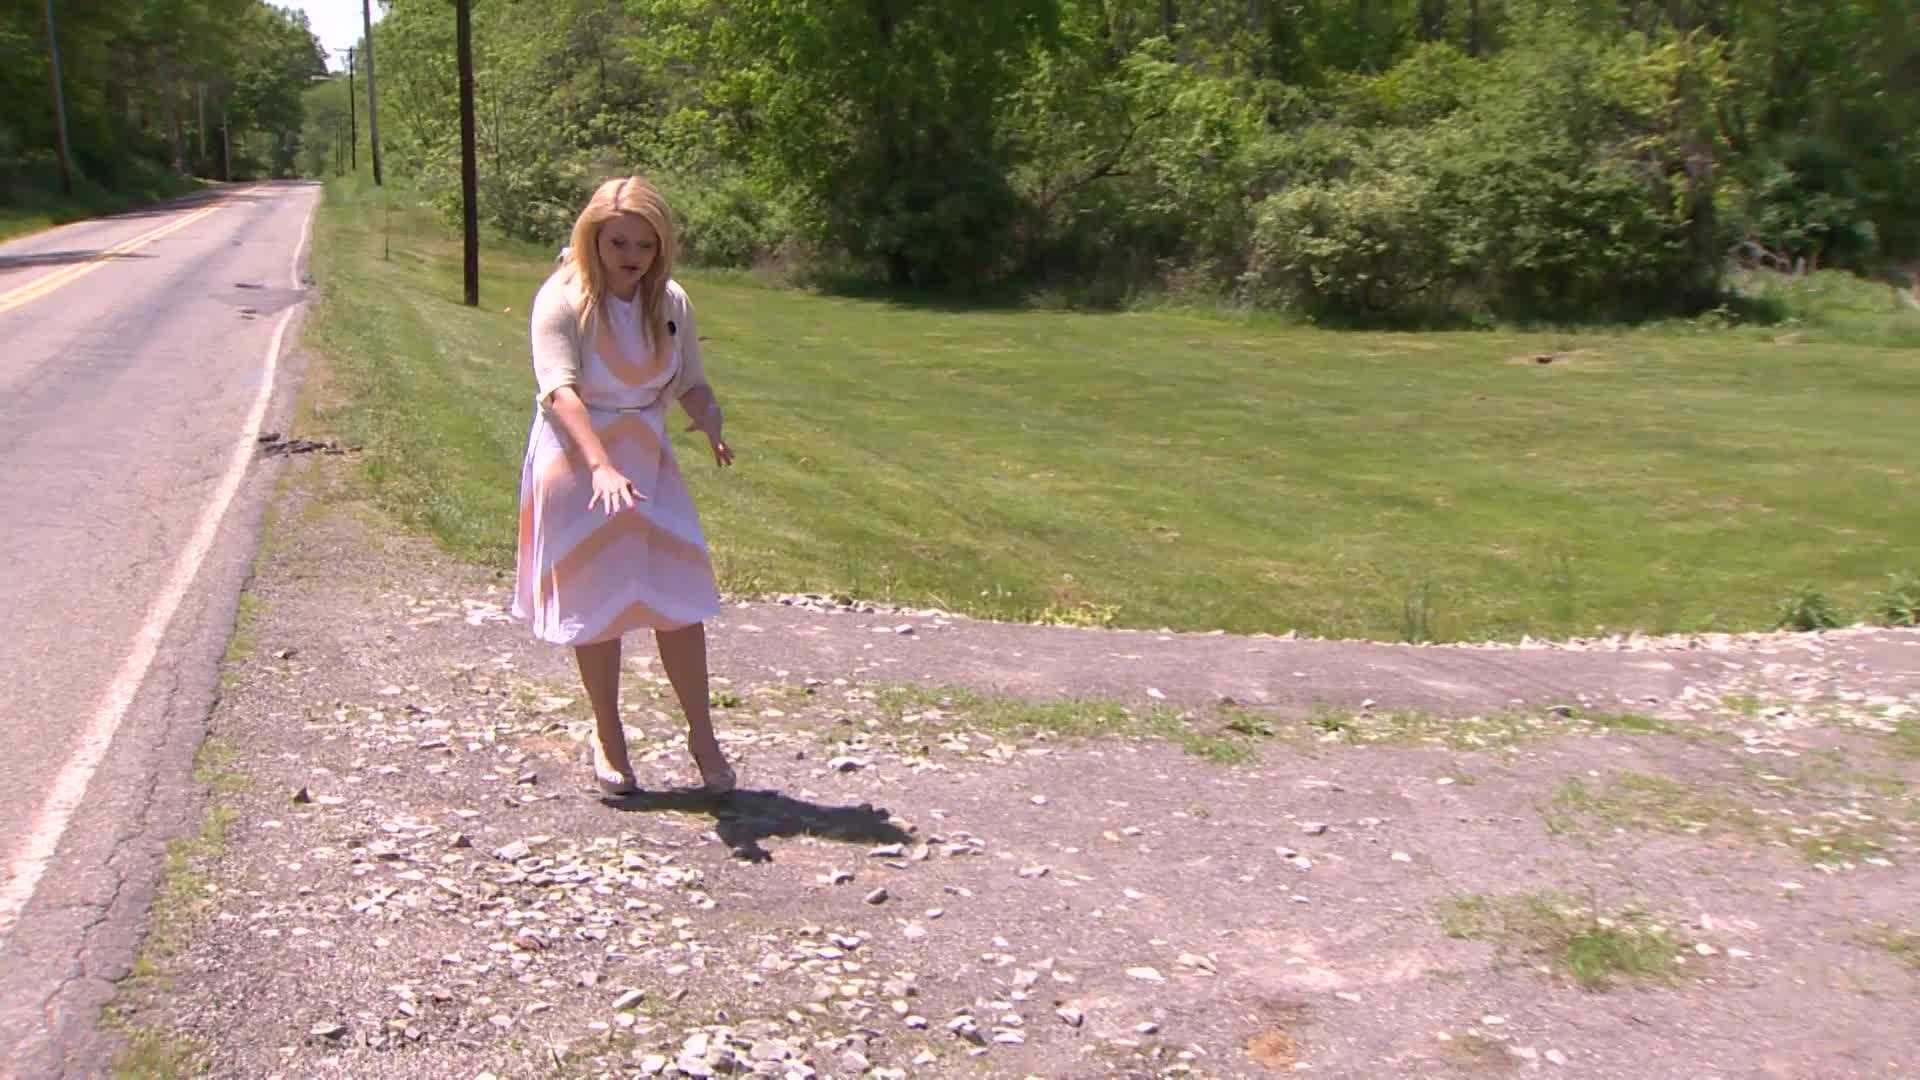 Pittsburgh's Action News 4 reporter Ashlie Hardway points to the area where the alleged sex assault happened.